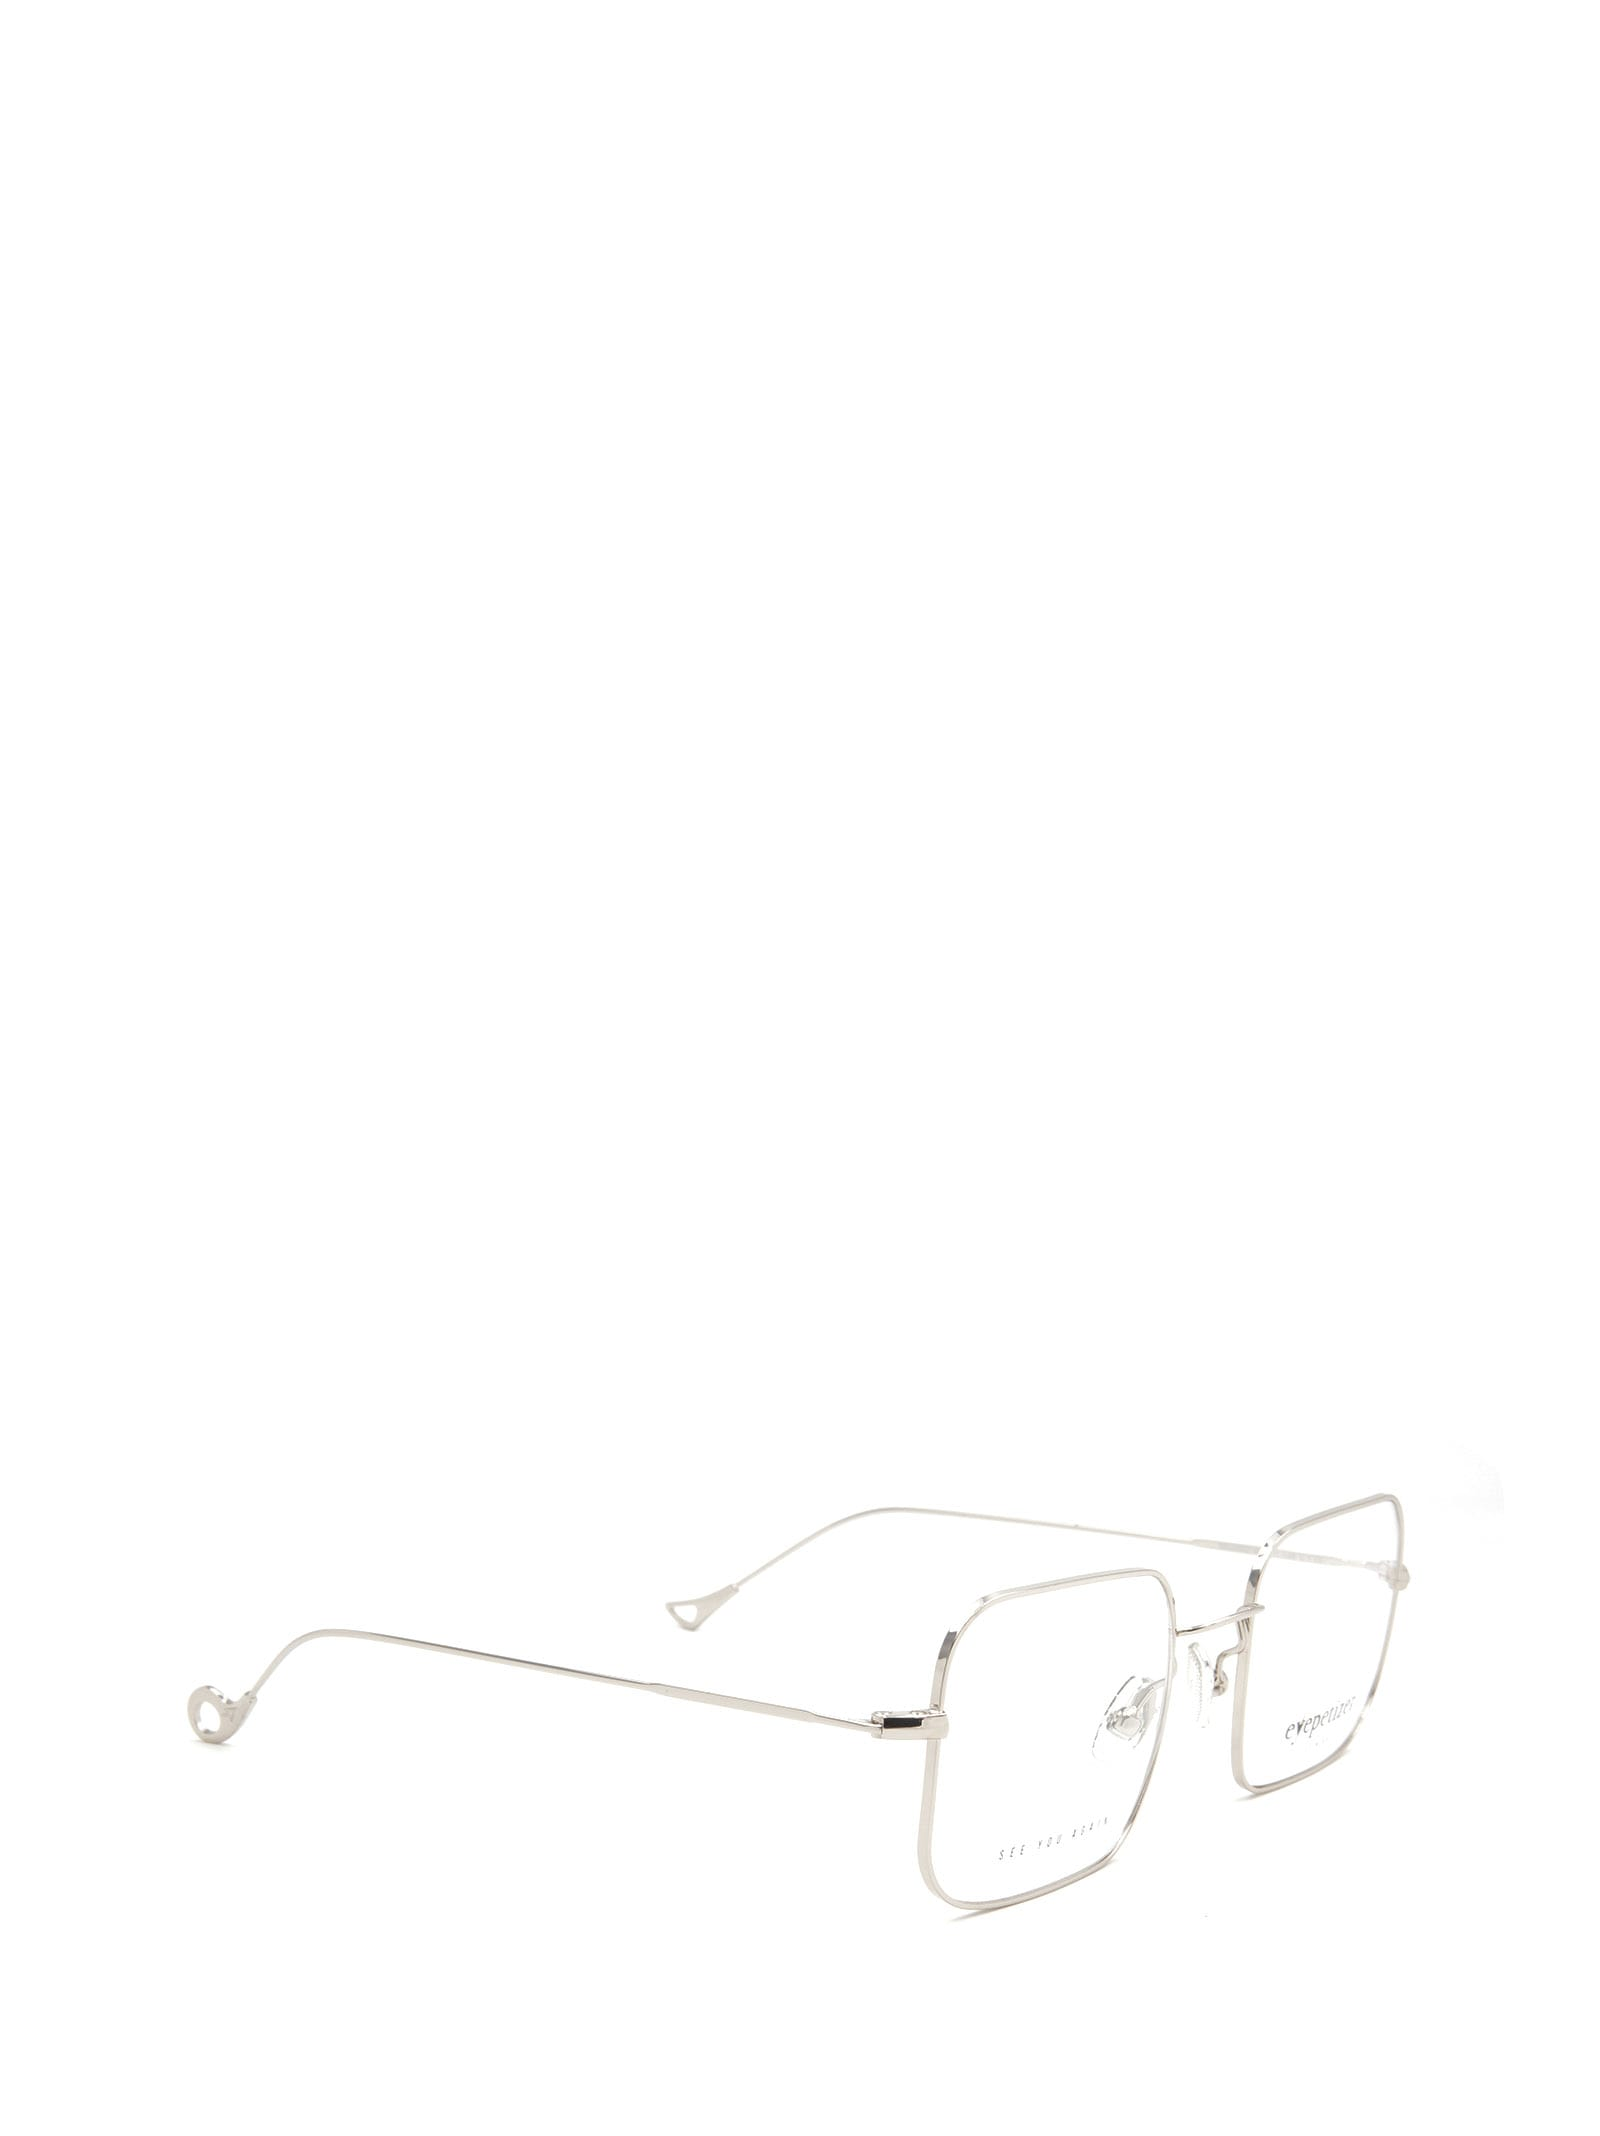 Recommend Cheap Eyepetizer Brando C 1-op Glasses